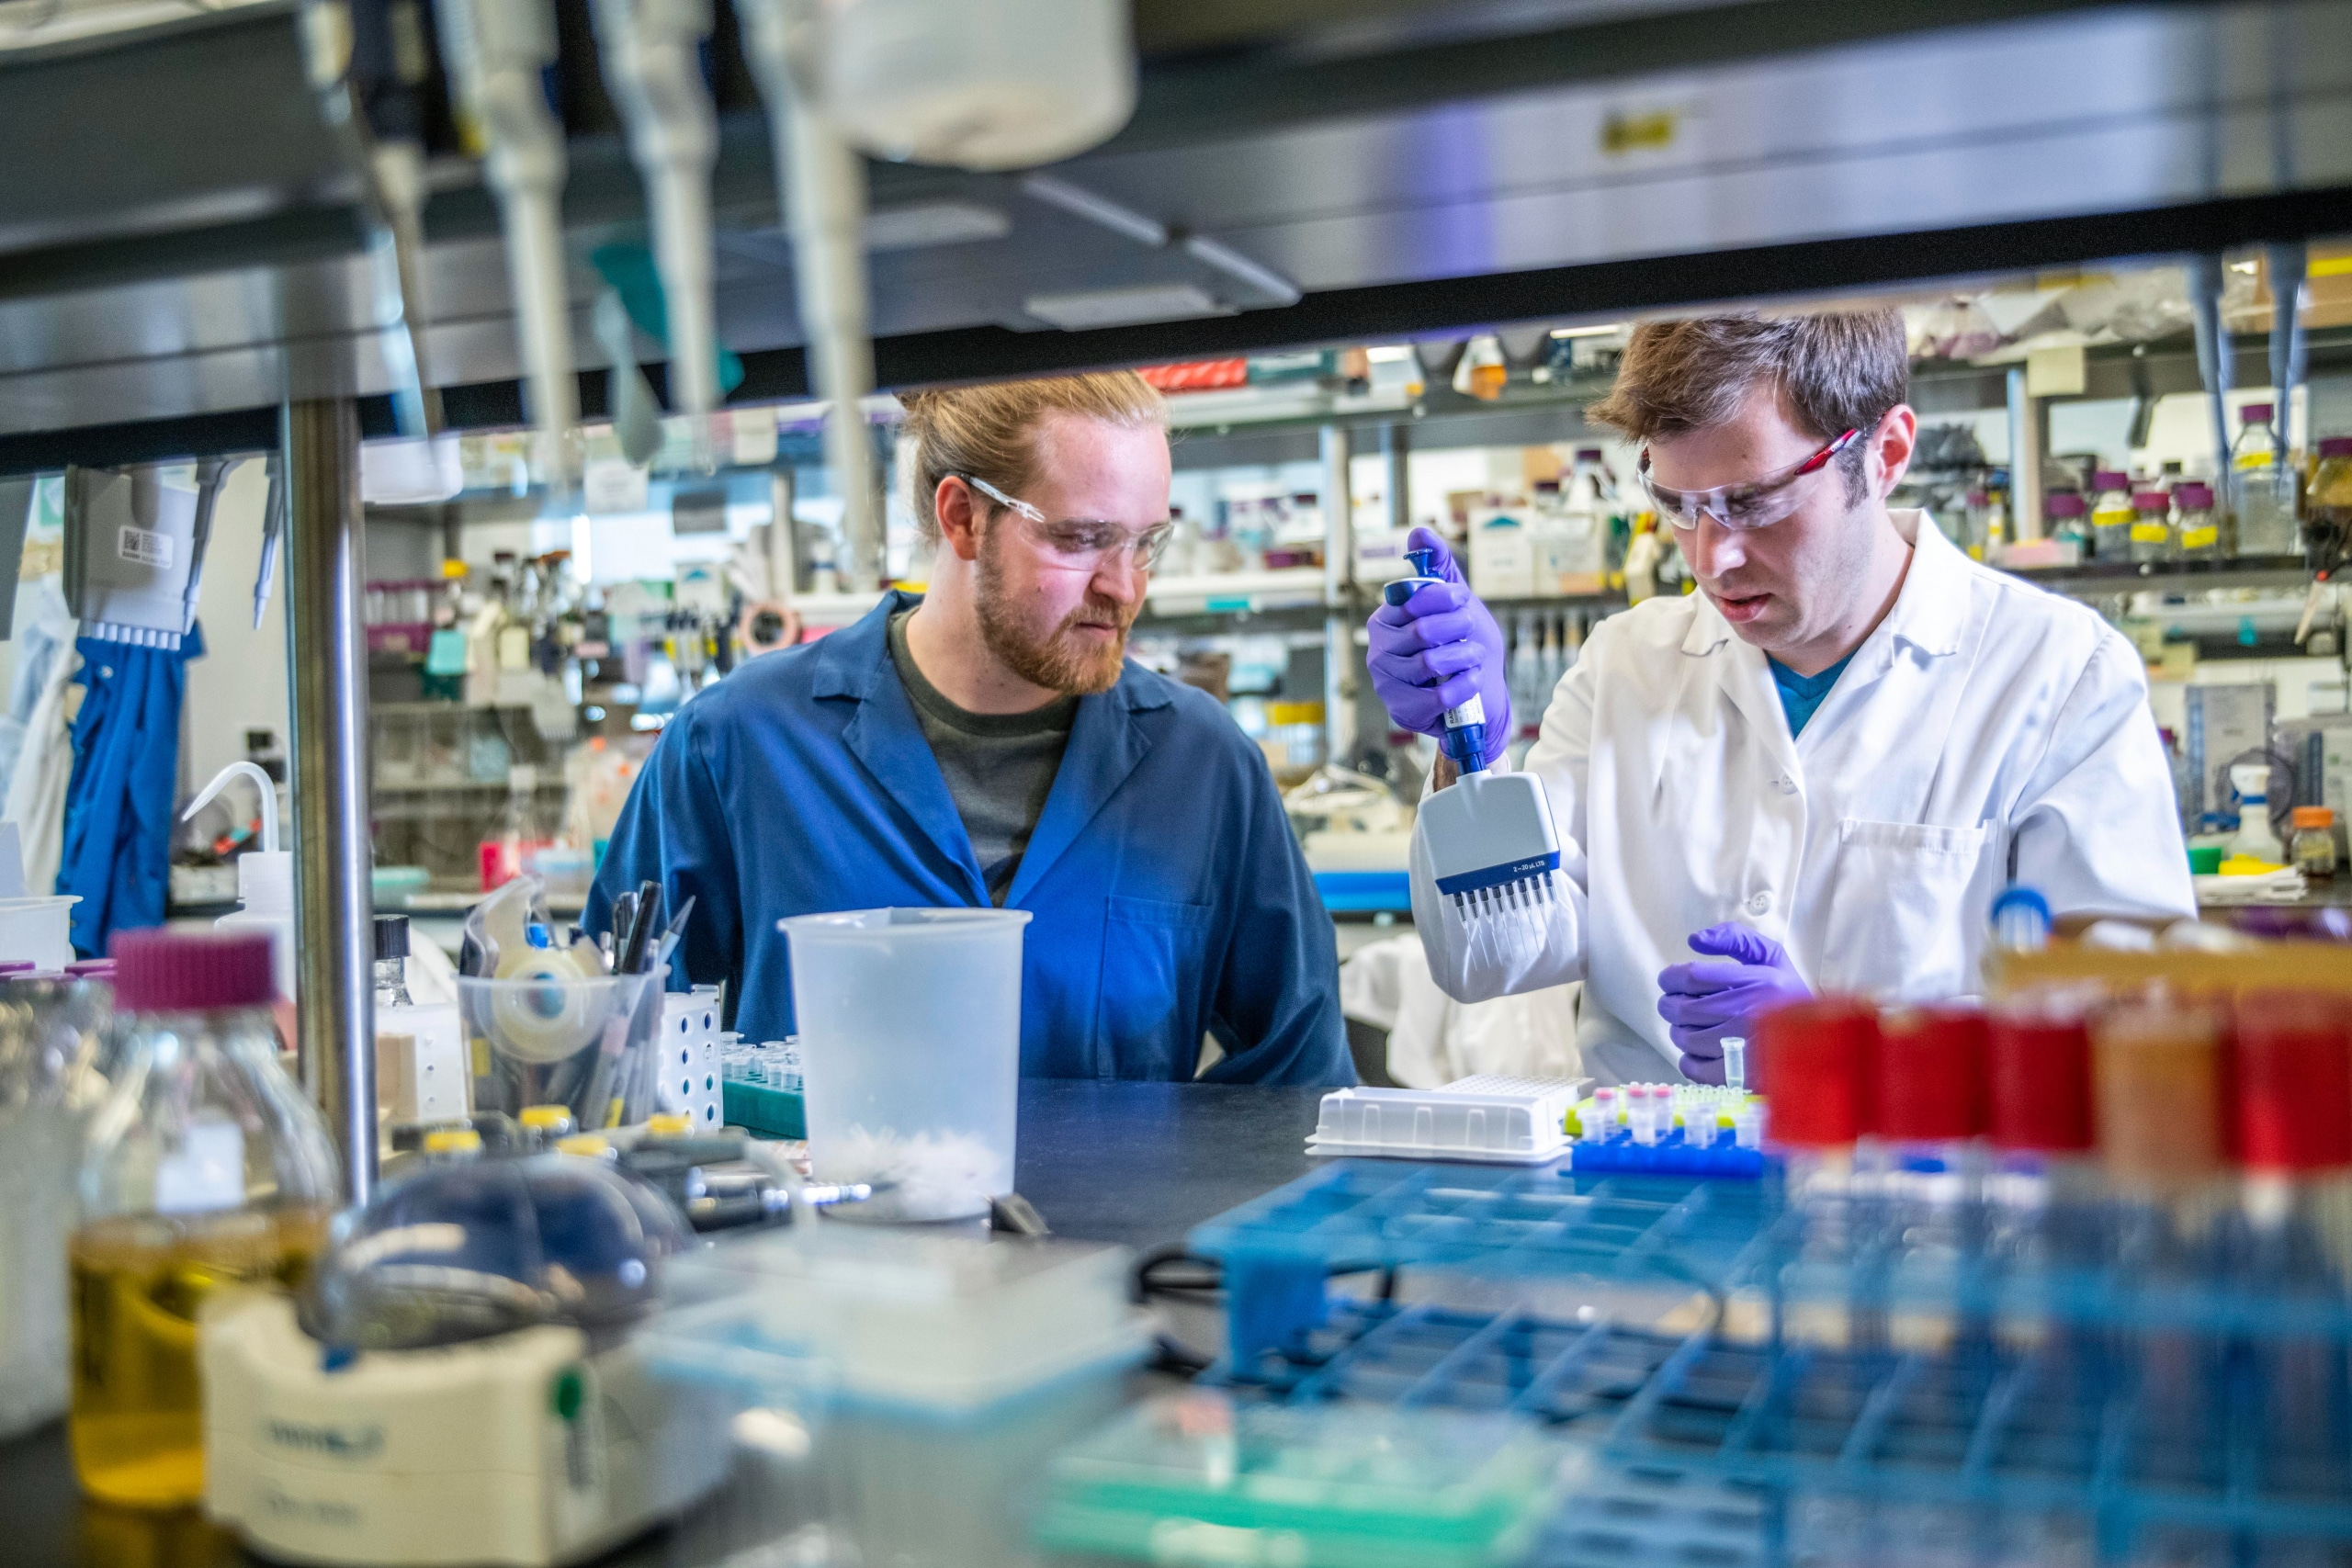 Two men wearing lab coats in a lab.